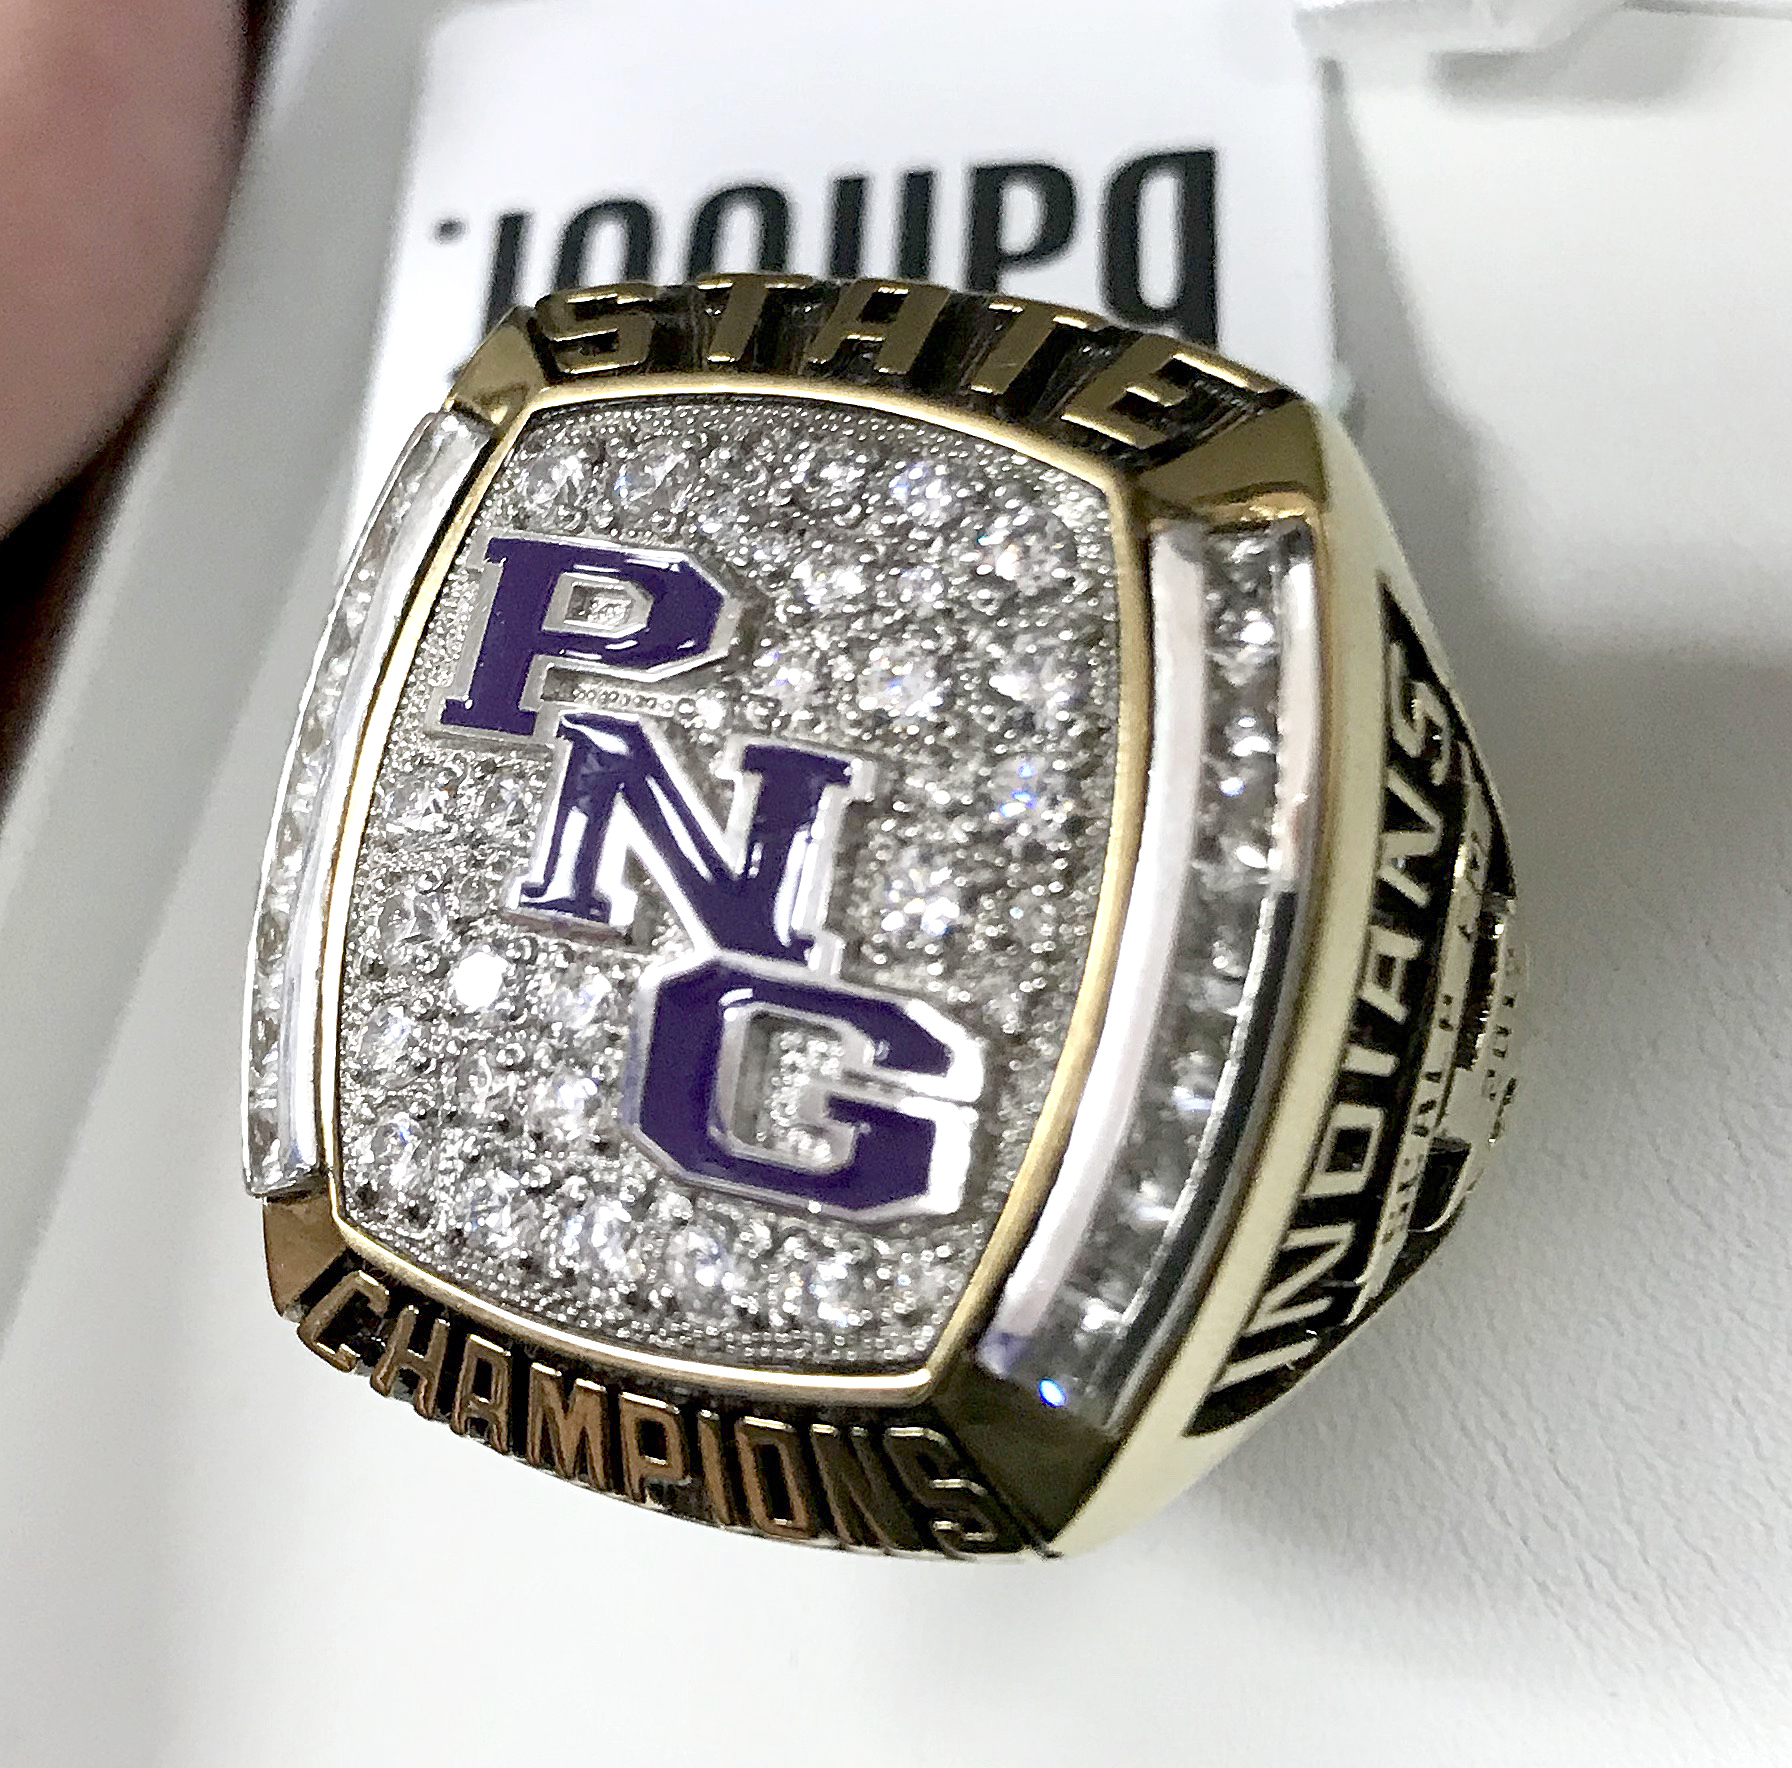 pn-g state baseball team to receive championship rings saturday